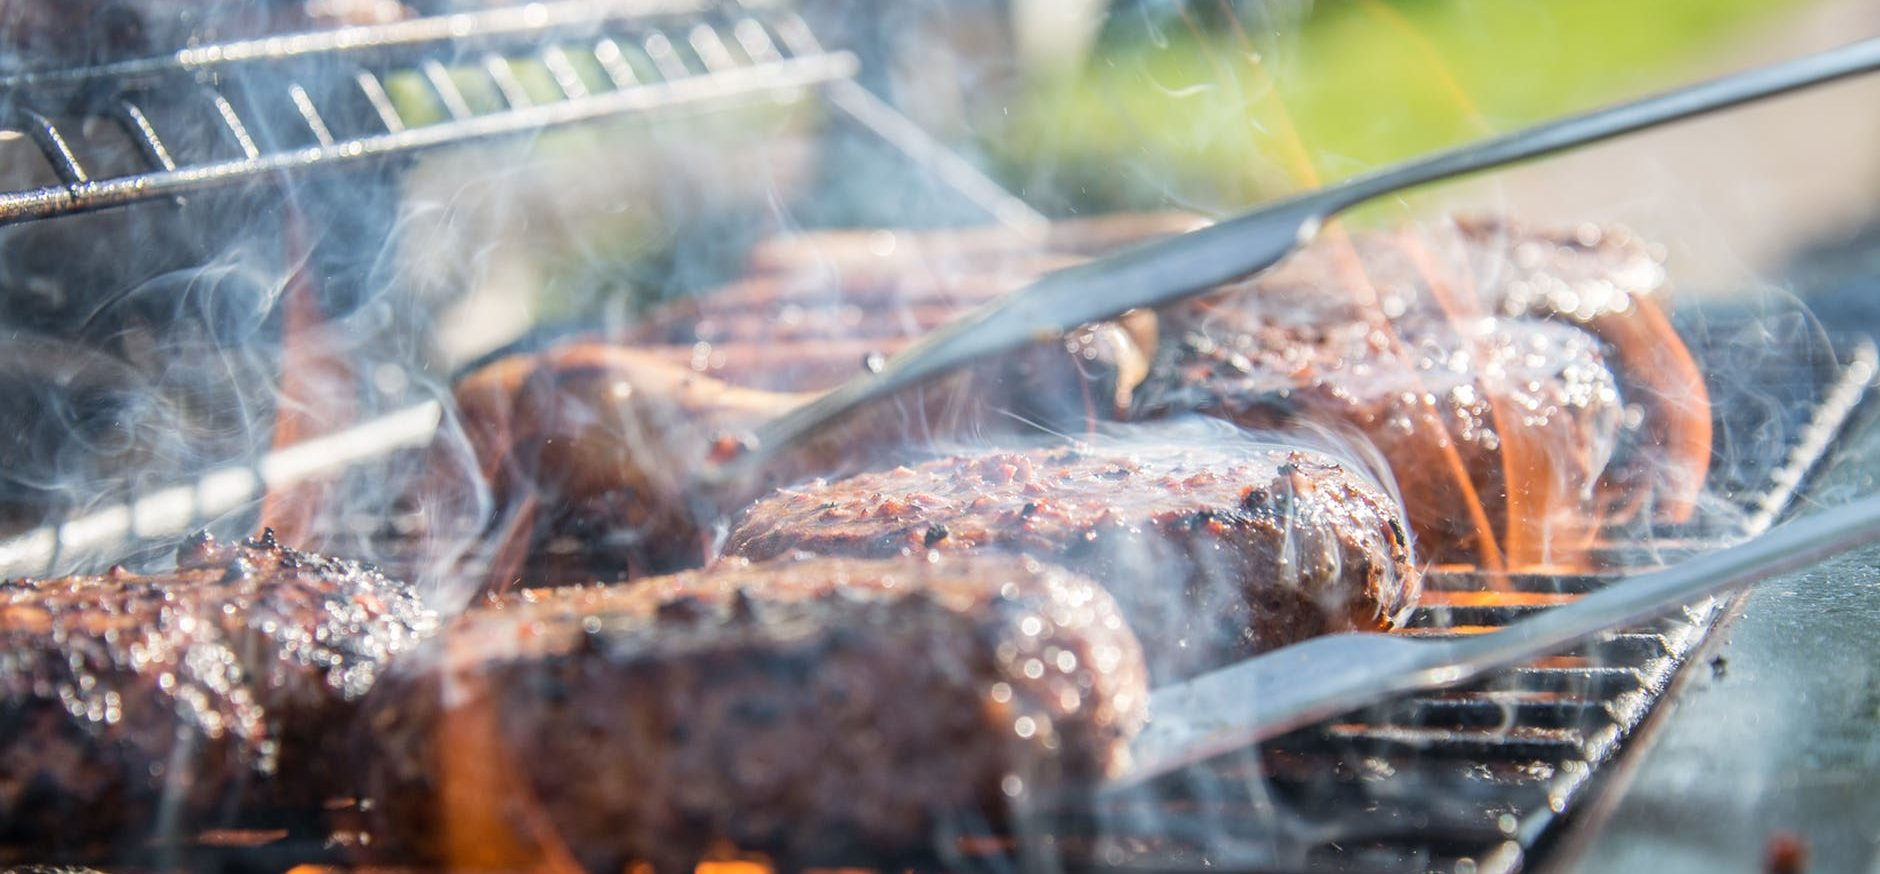 mobile-bbq-catering-kent